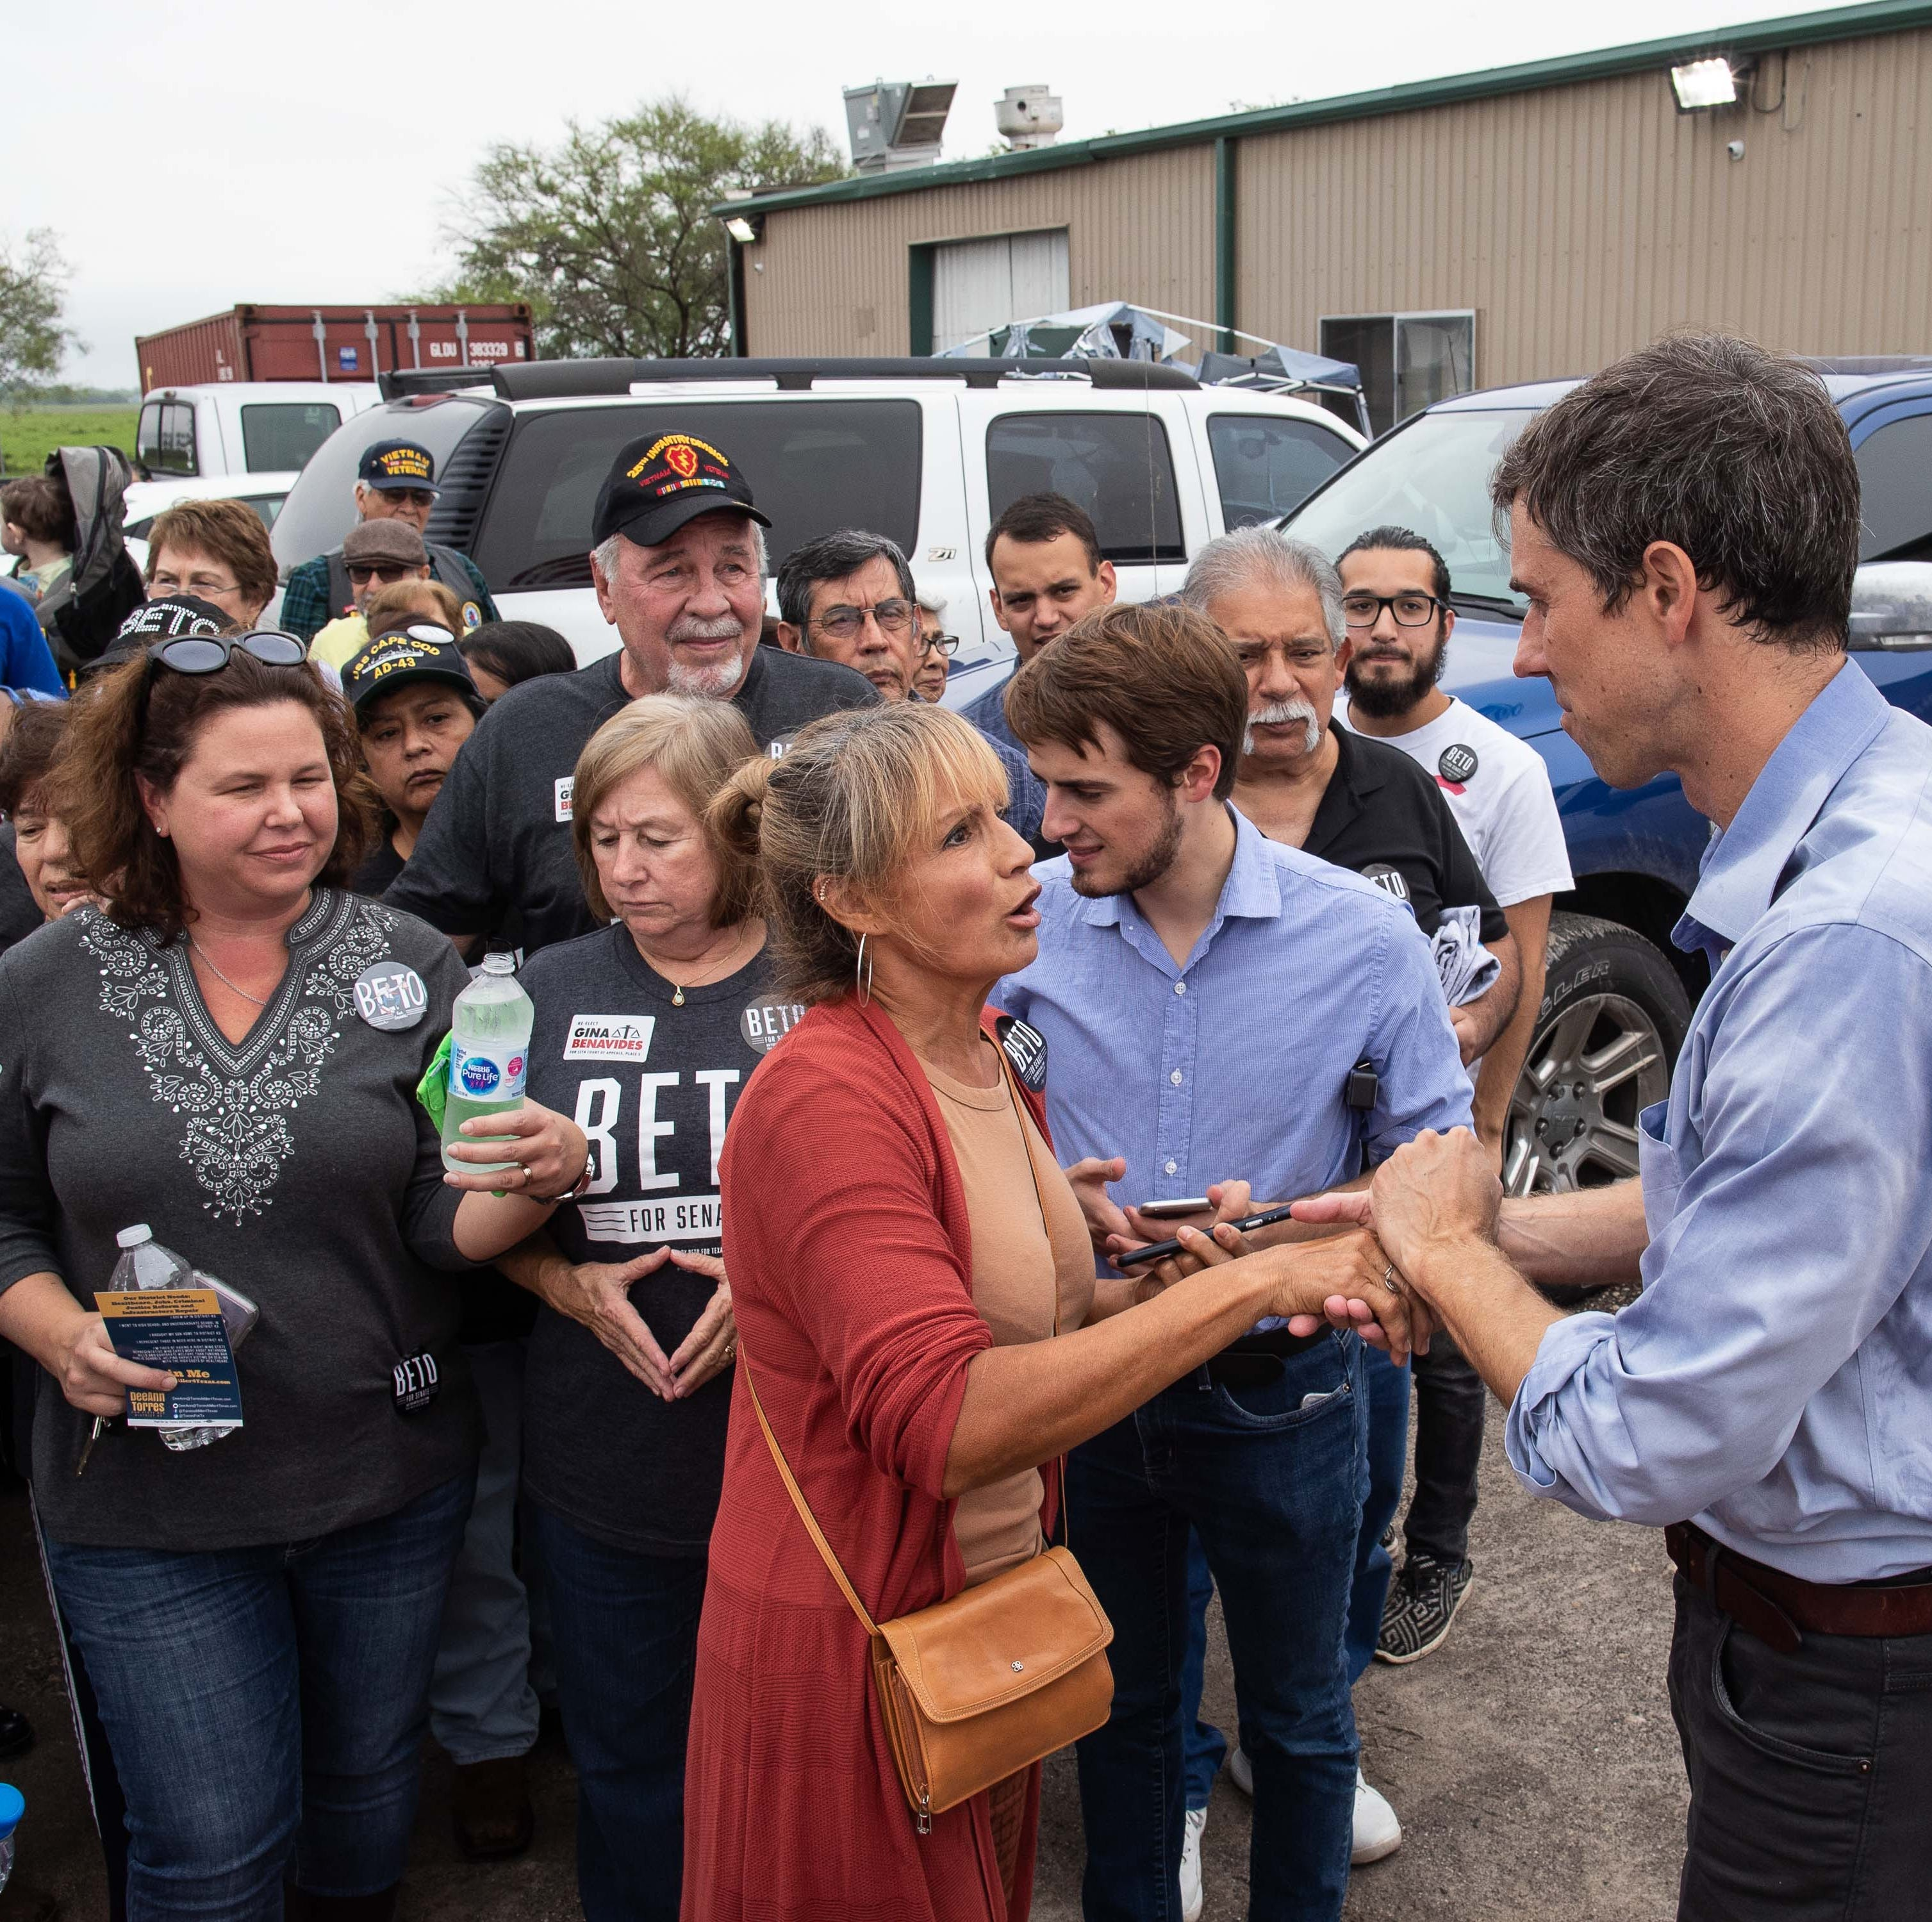 Poll: Texas women won't propel Beto O'Rourke to victory